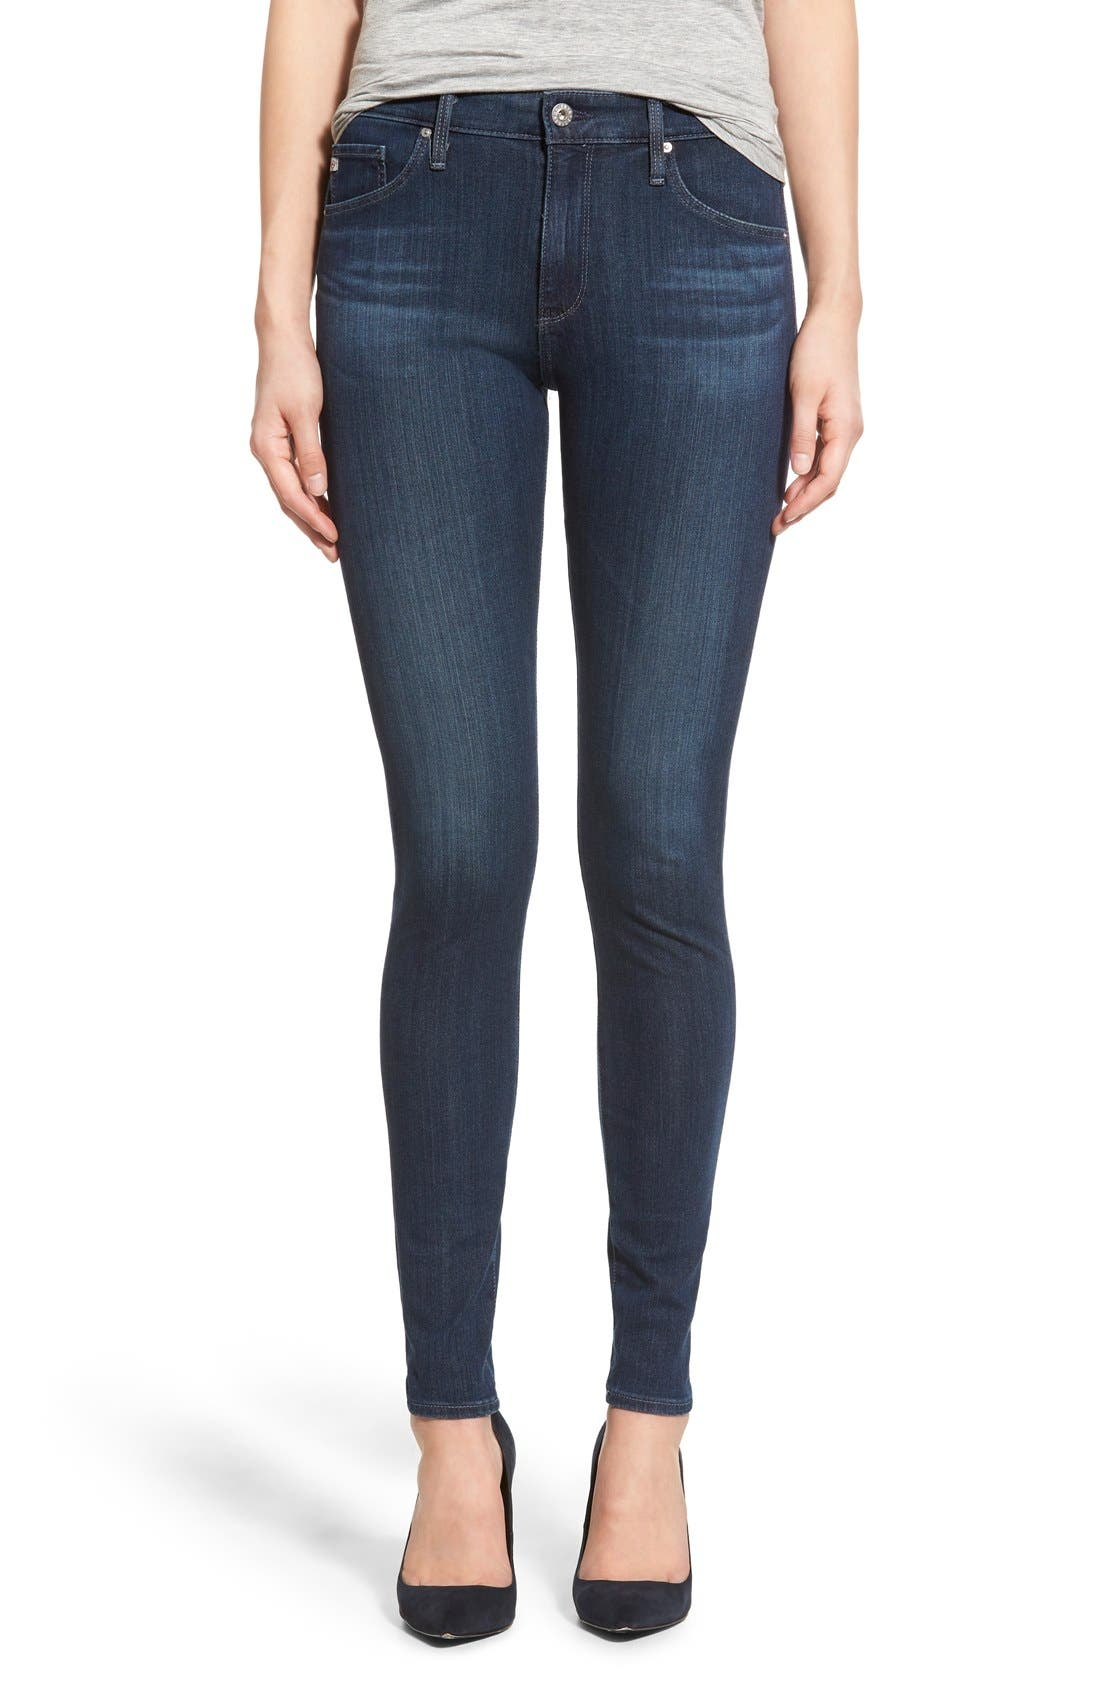 Alternate Image 1 Selected - AG 'The Farrah' High Rise Skinny Jeans (Crater)